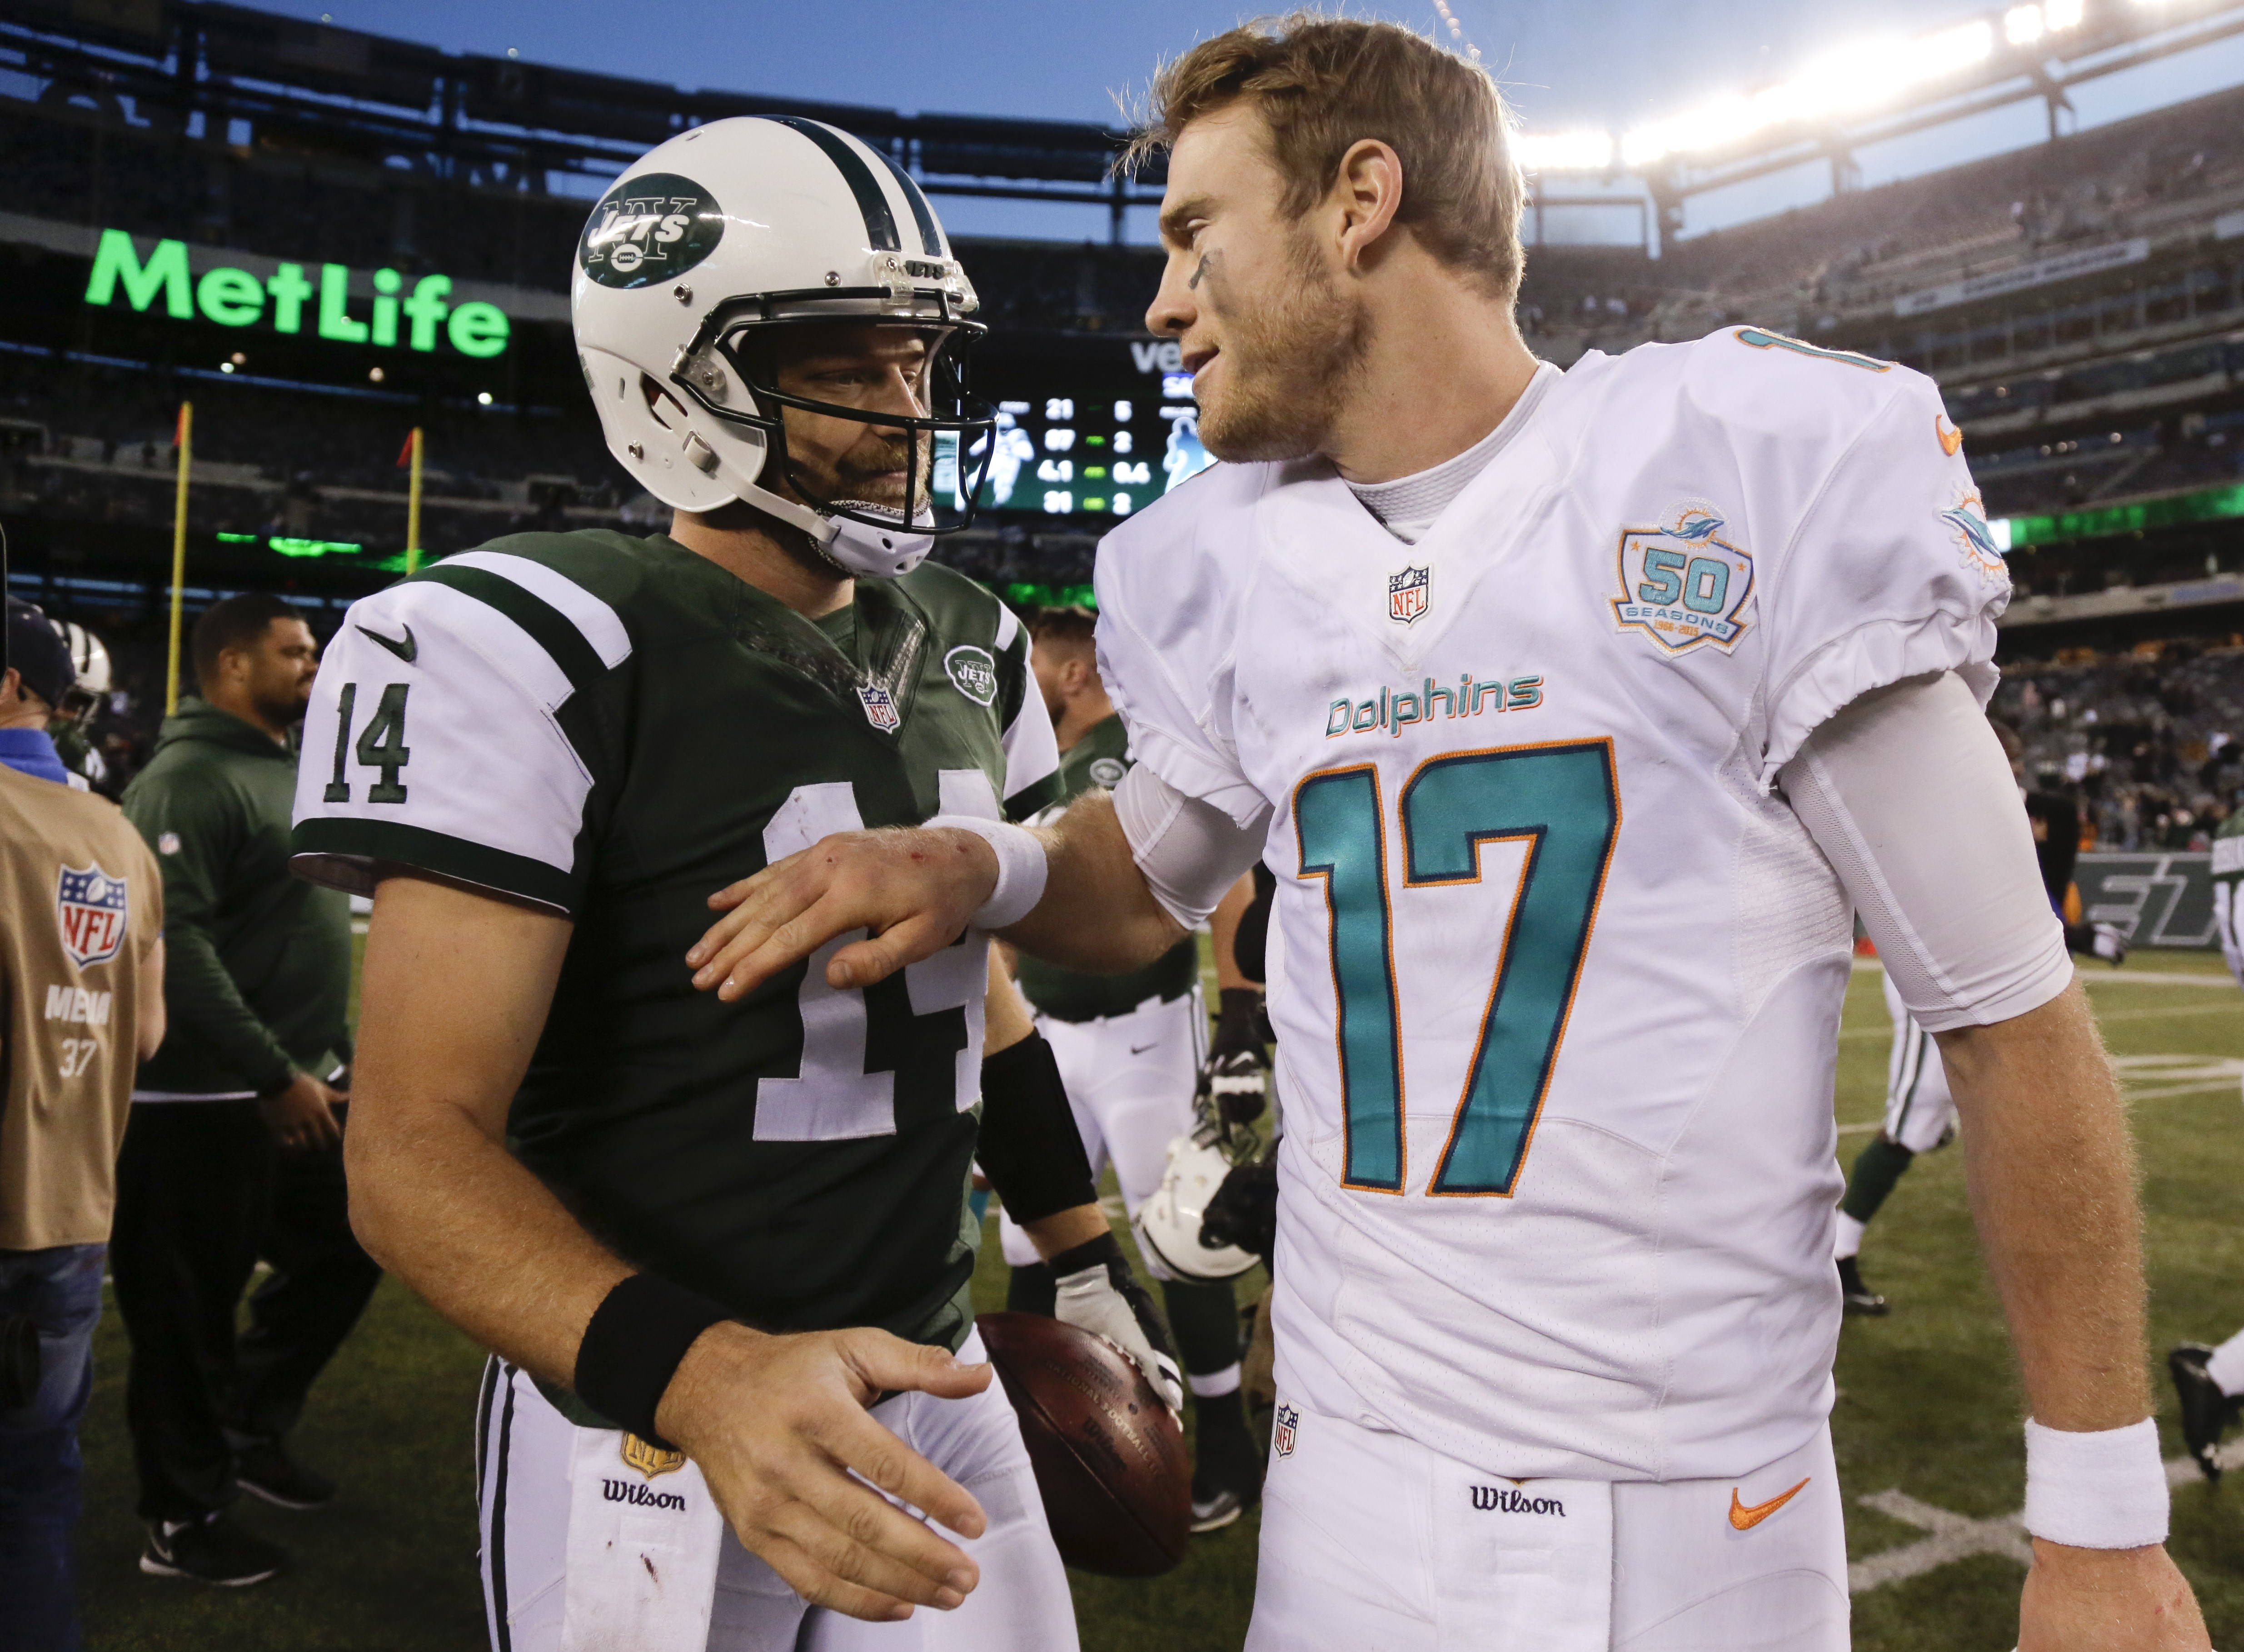 New York Jets quarterback Ryan Fitzpatrick (14) and Miami Dolphins quarterback Ryan Tannehill (17) talk after their NFL football game Sunday, Nov. 29, 2015, in East Rutherford, N.J. The Jets won 38-20. (AP Photo/Julie Jacobson)